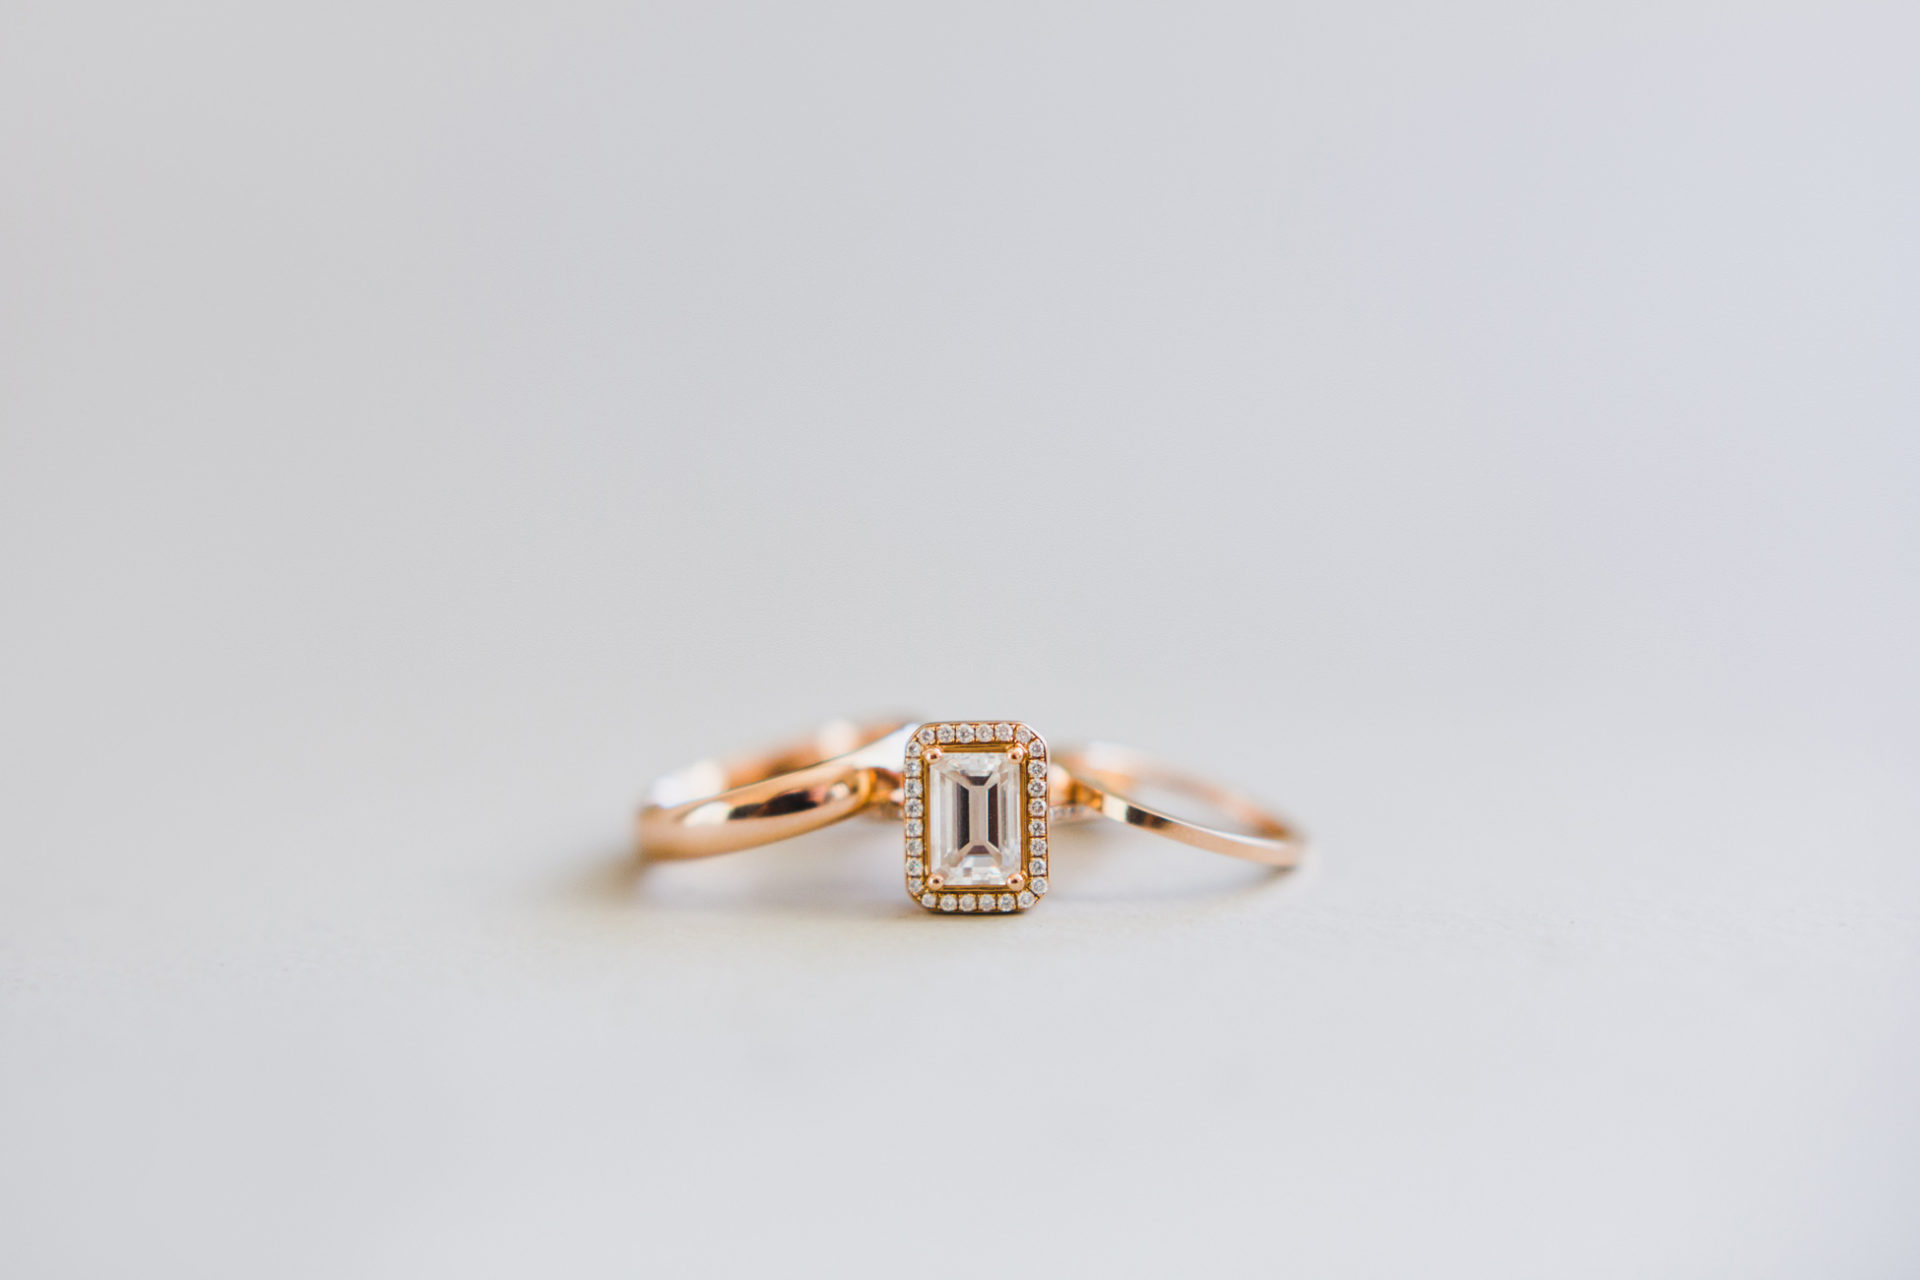 best-top-los-angeles-destination-wedding-photographer-hipster-modern-quirky-editorial-romantic-epic-03-light-airy-clean-rings